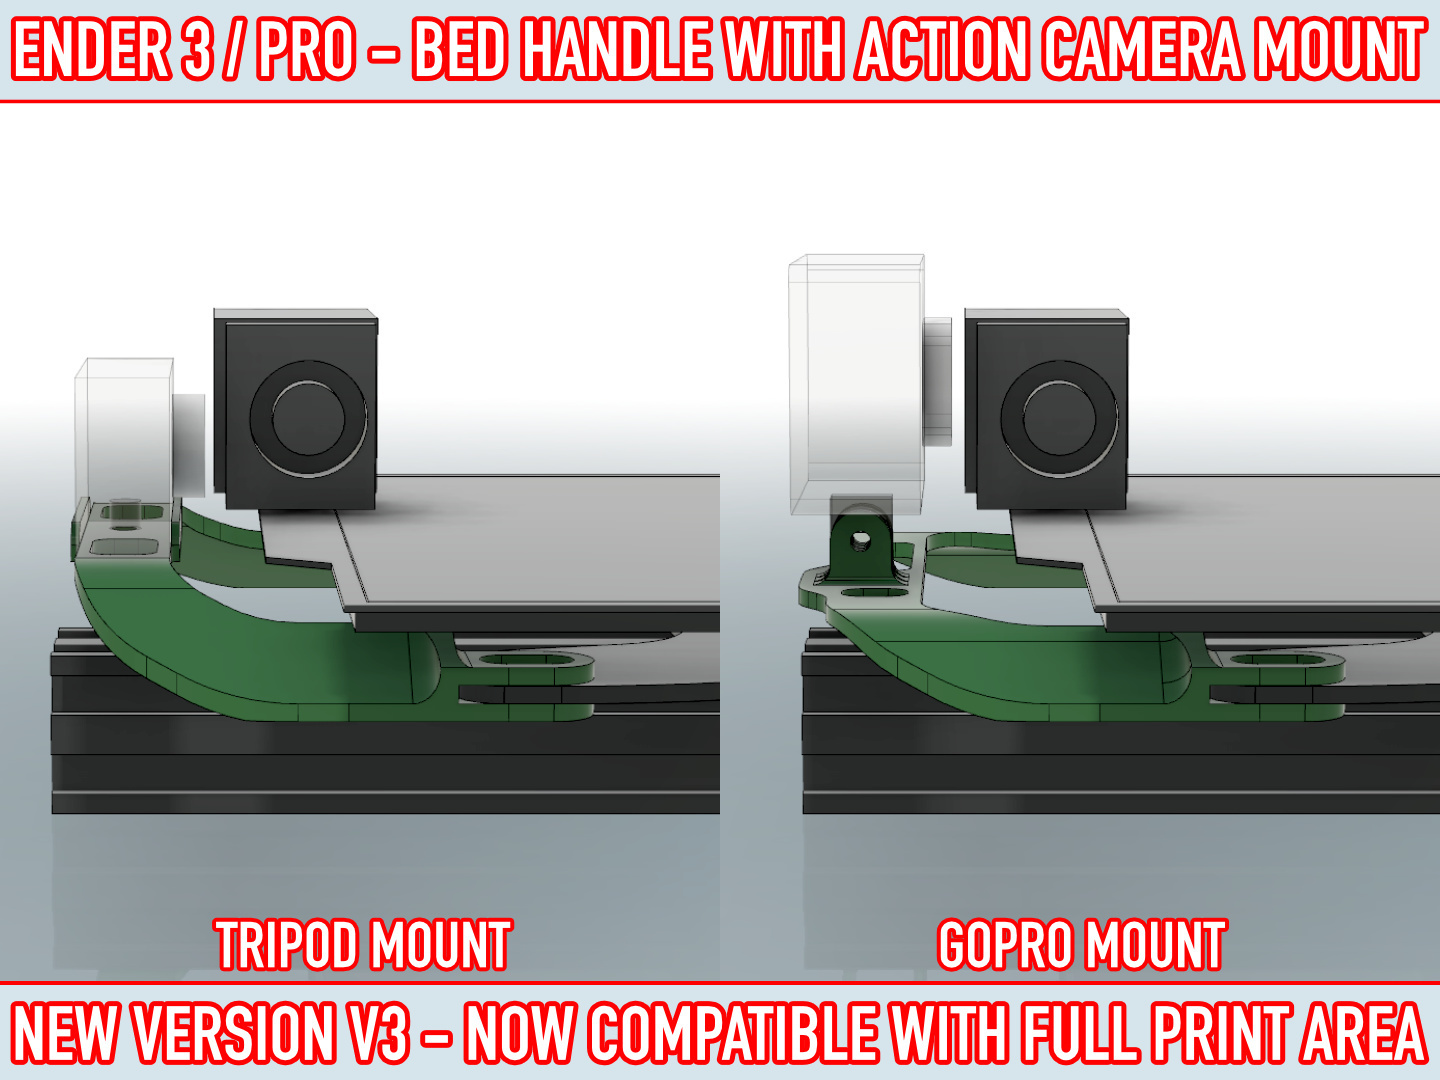 02.jpg Download free STL file ADKS - Ender 3 Bed Handle with action cam mount • Template to 3D print, Adarkstudio